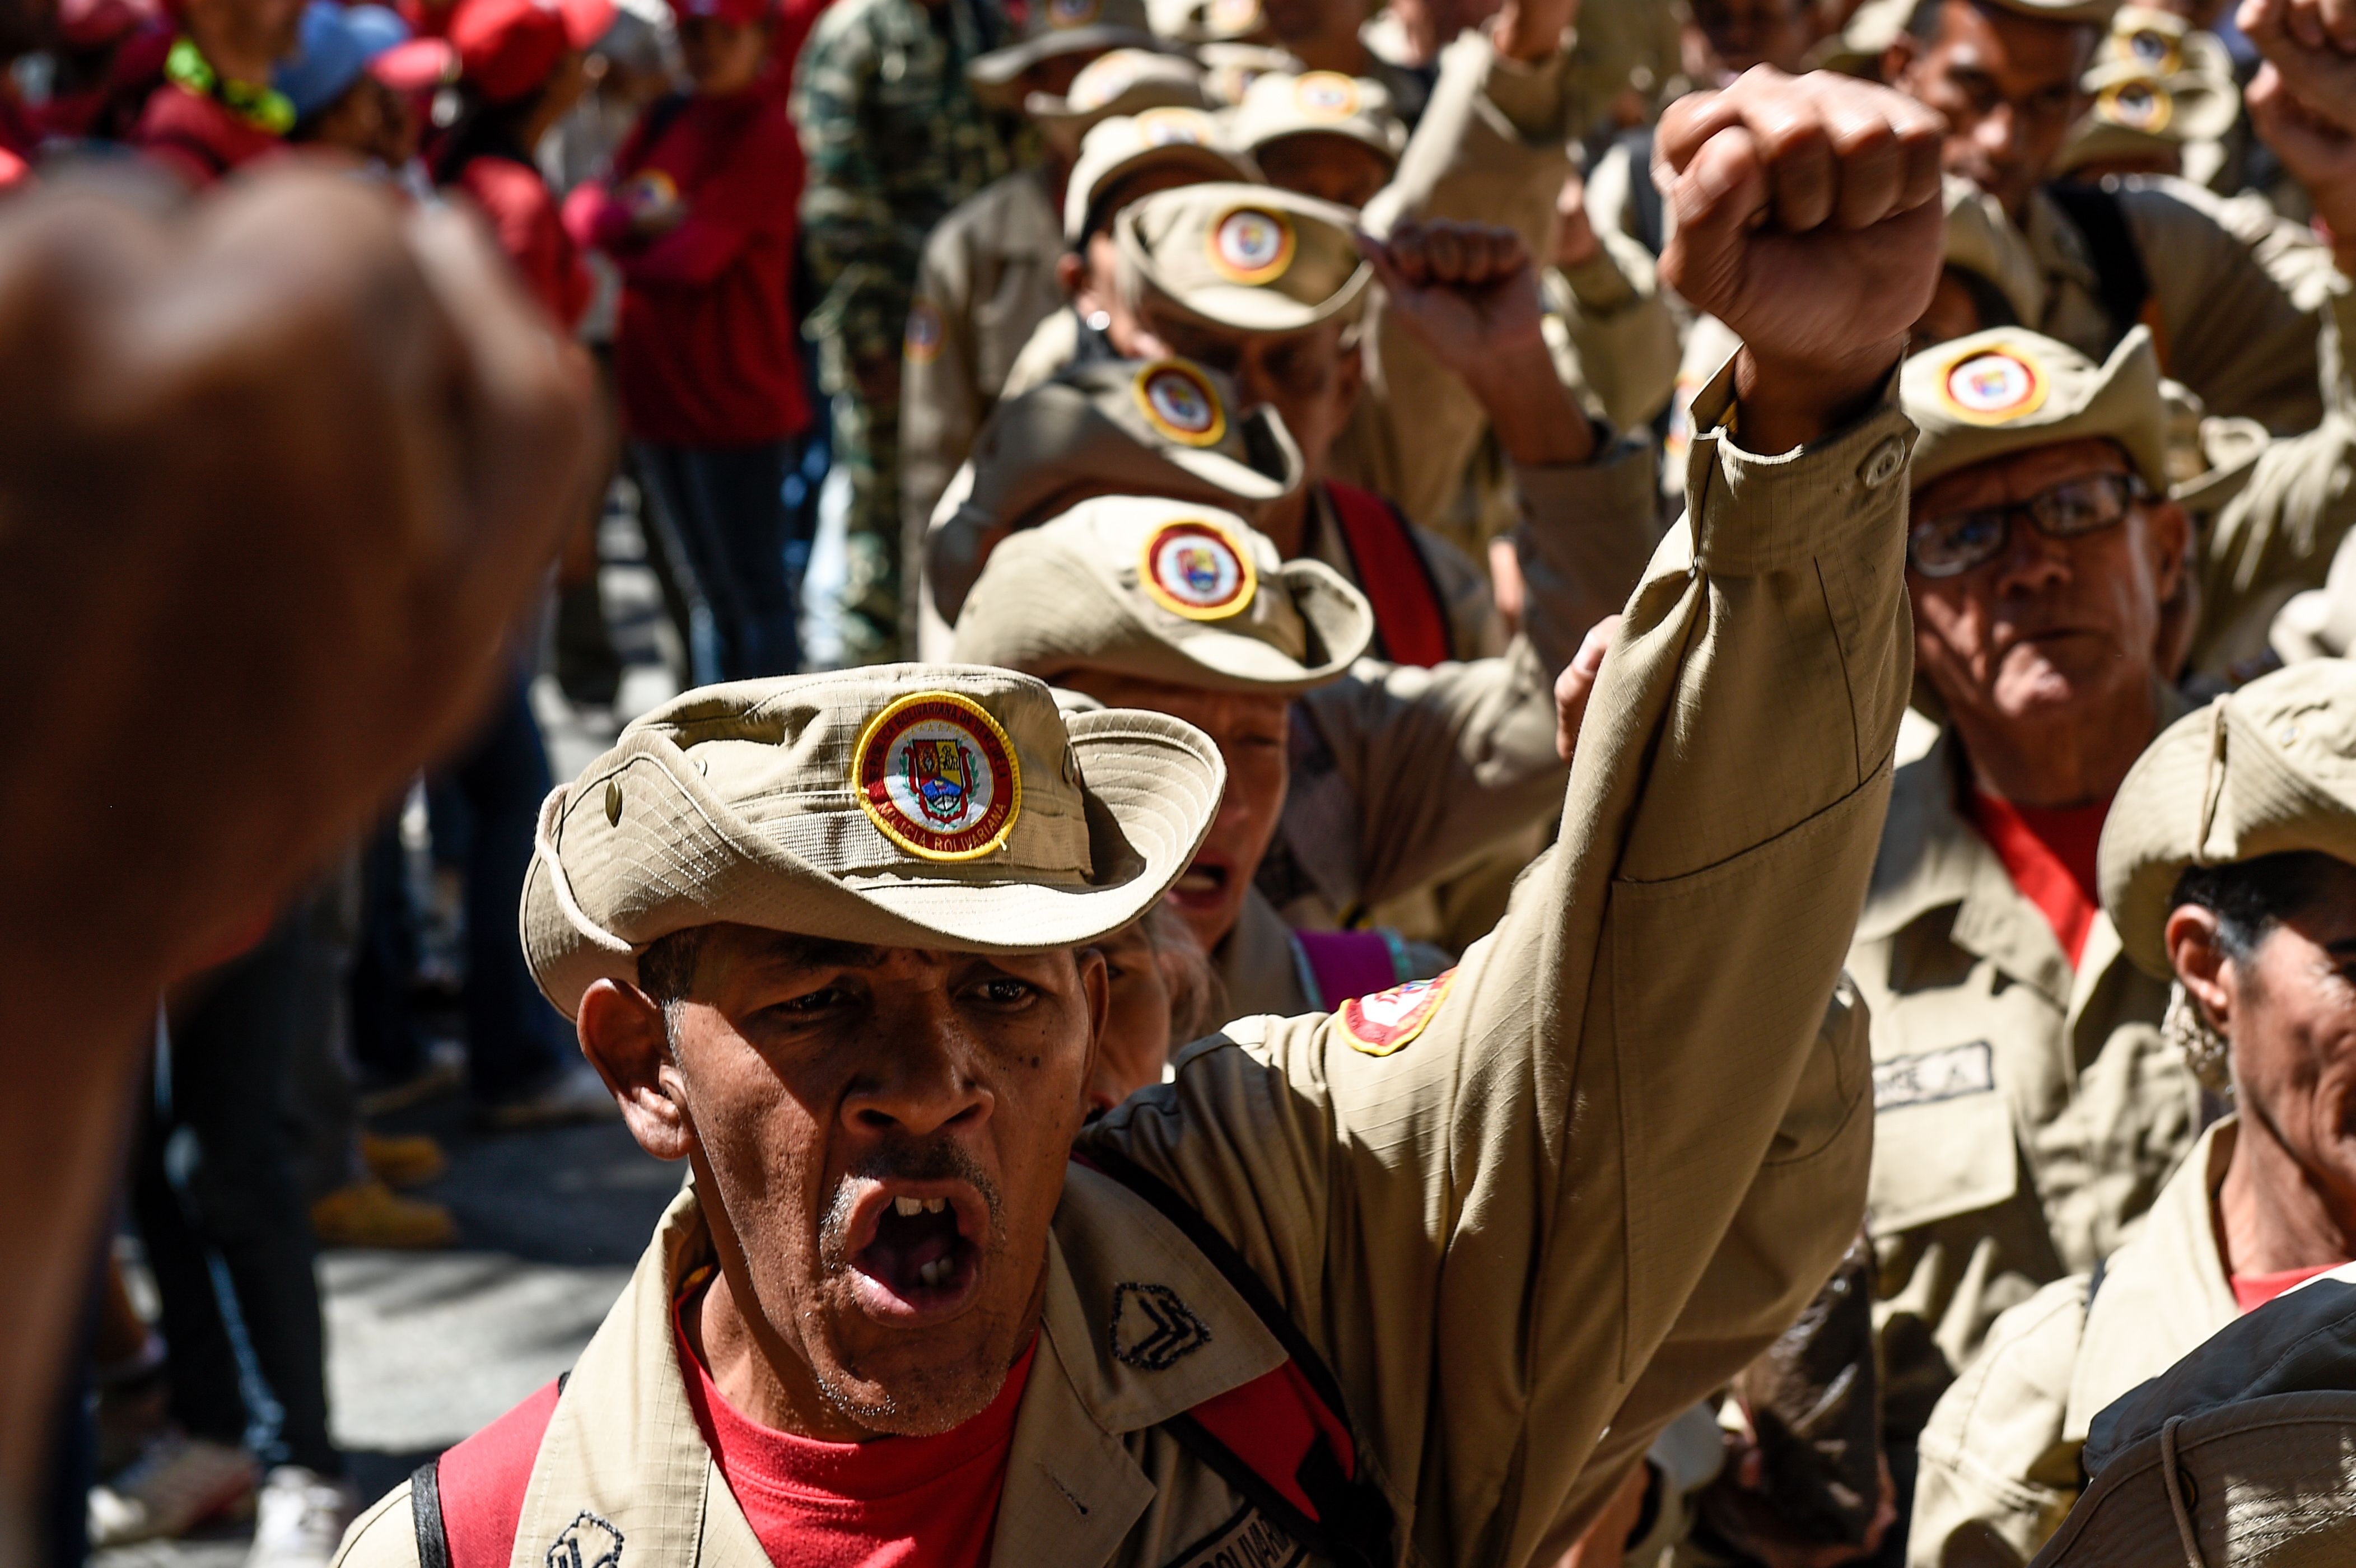 "Members of Venezuela's Bolivarian militia demonstrate in support of President Nicolas Maduro during a commemoration for the ""27th Anniversary of the Military Rebellion of the 4FEB92 and National Dignity Day"", at Bolivar Square in Caracas, on February 4, 2019. - The United Nations will not join any group of nations promoting initiatives to resolve the crisis in Venezuela, the UN chief said Monday, indicating he will not attend a meeting in Uruguay this week of several countries. Mexico and Uruguay had hoped that UN Secretary-General Antonio Guterres would attend a conference in Montevideo on Thursday aimed at promoting dialogue between Venezuela's President Nicolas Maduro and opposition leader Juan Guaido. (Photo by Federico PARRA / AFP)        (Photo credit should read FEDERICO PARRA/AFP/Getty Images)"